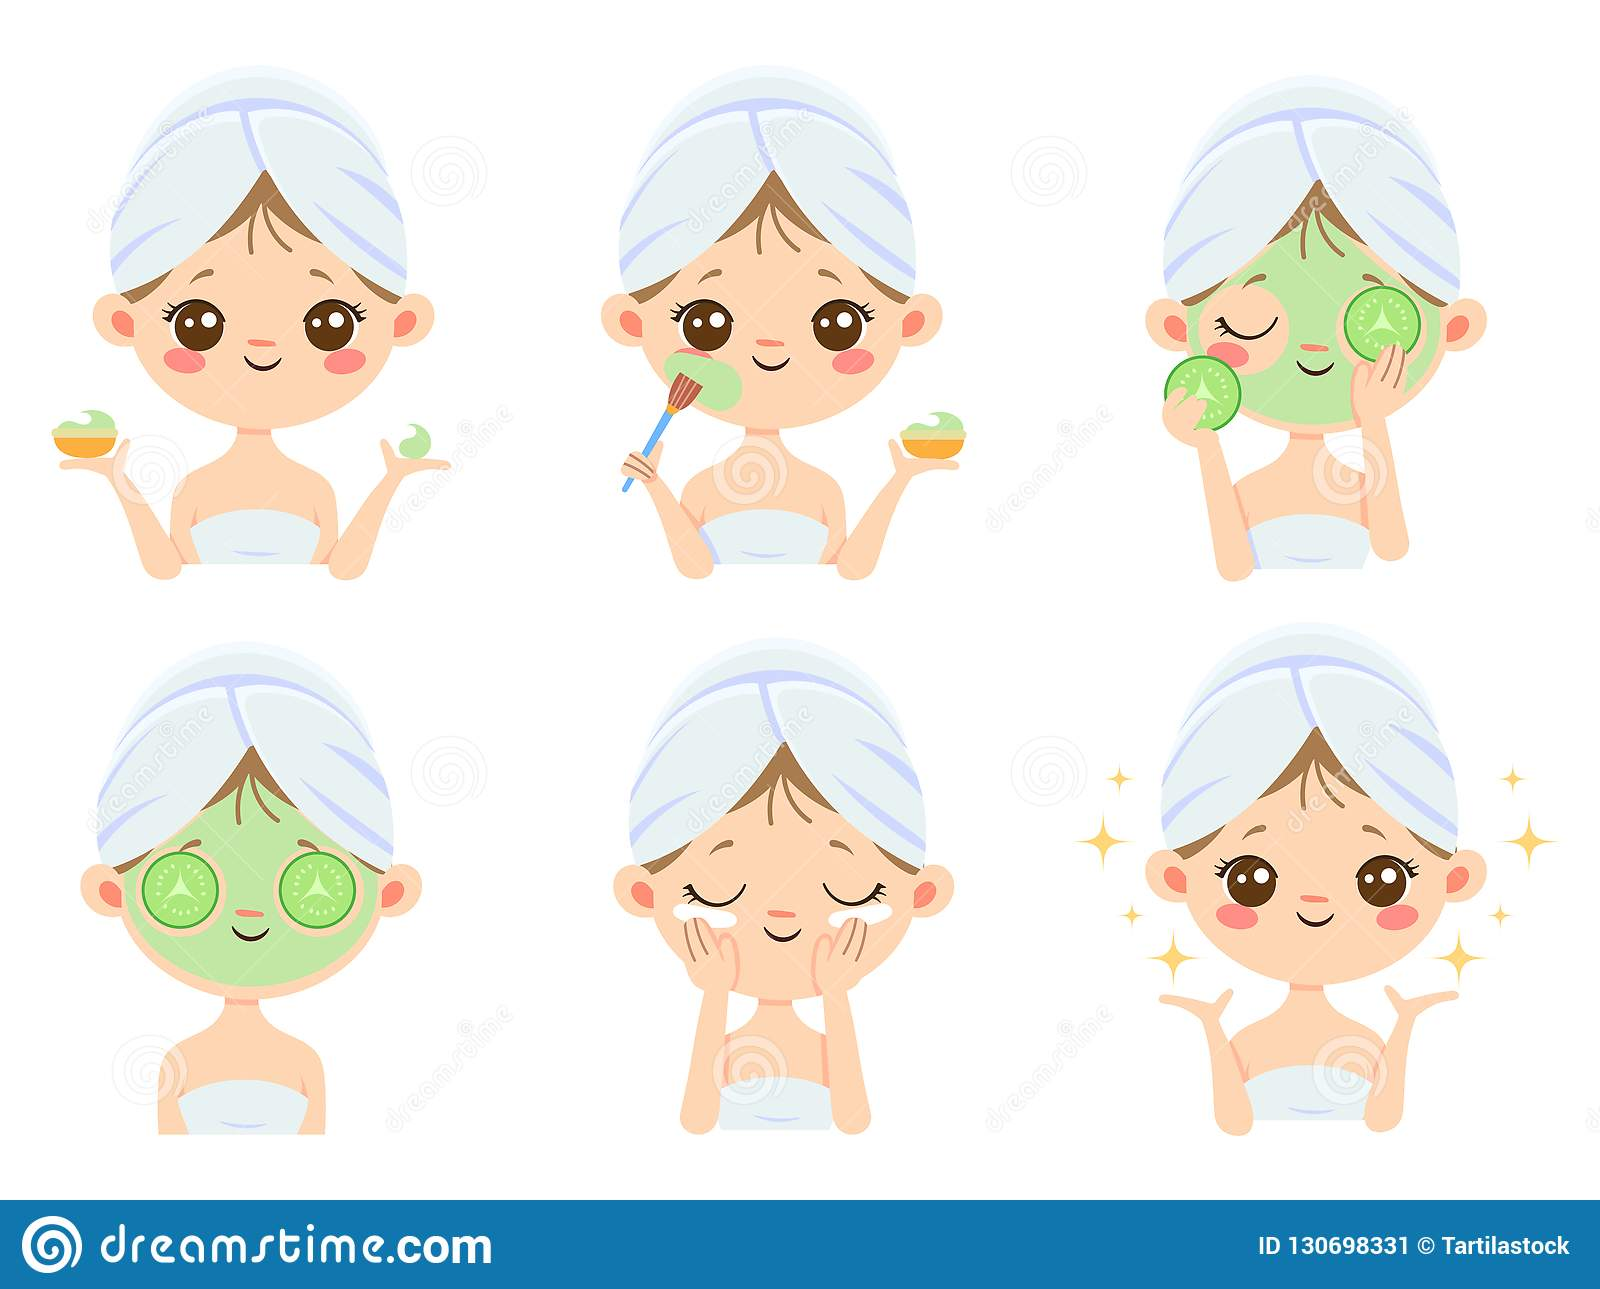 Beauty face mask. Woman skin care, cleaning and face brushing. Acne treatment masks vector cartoon illustration